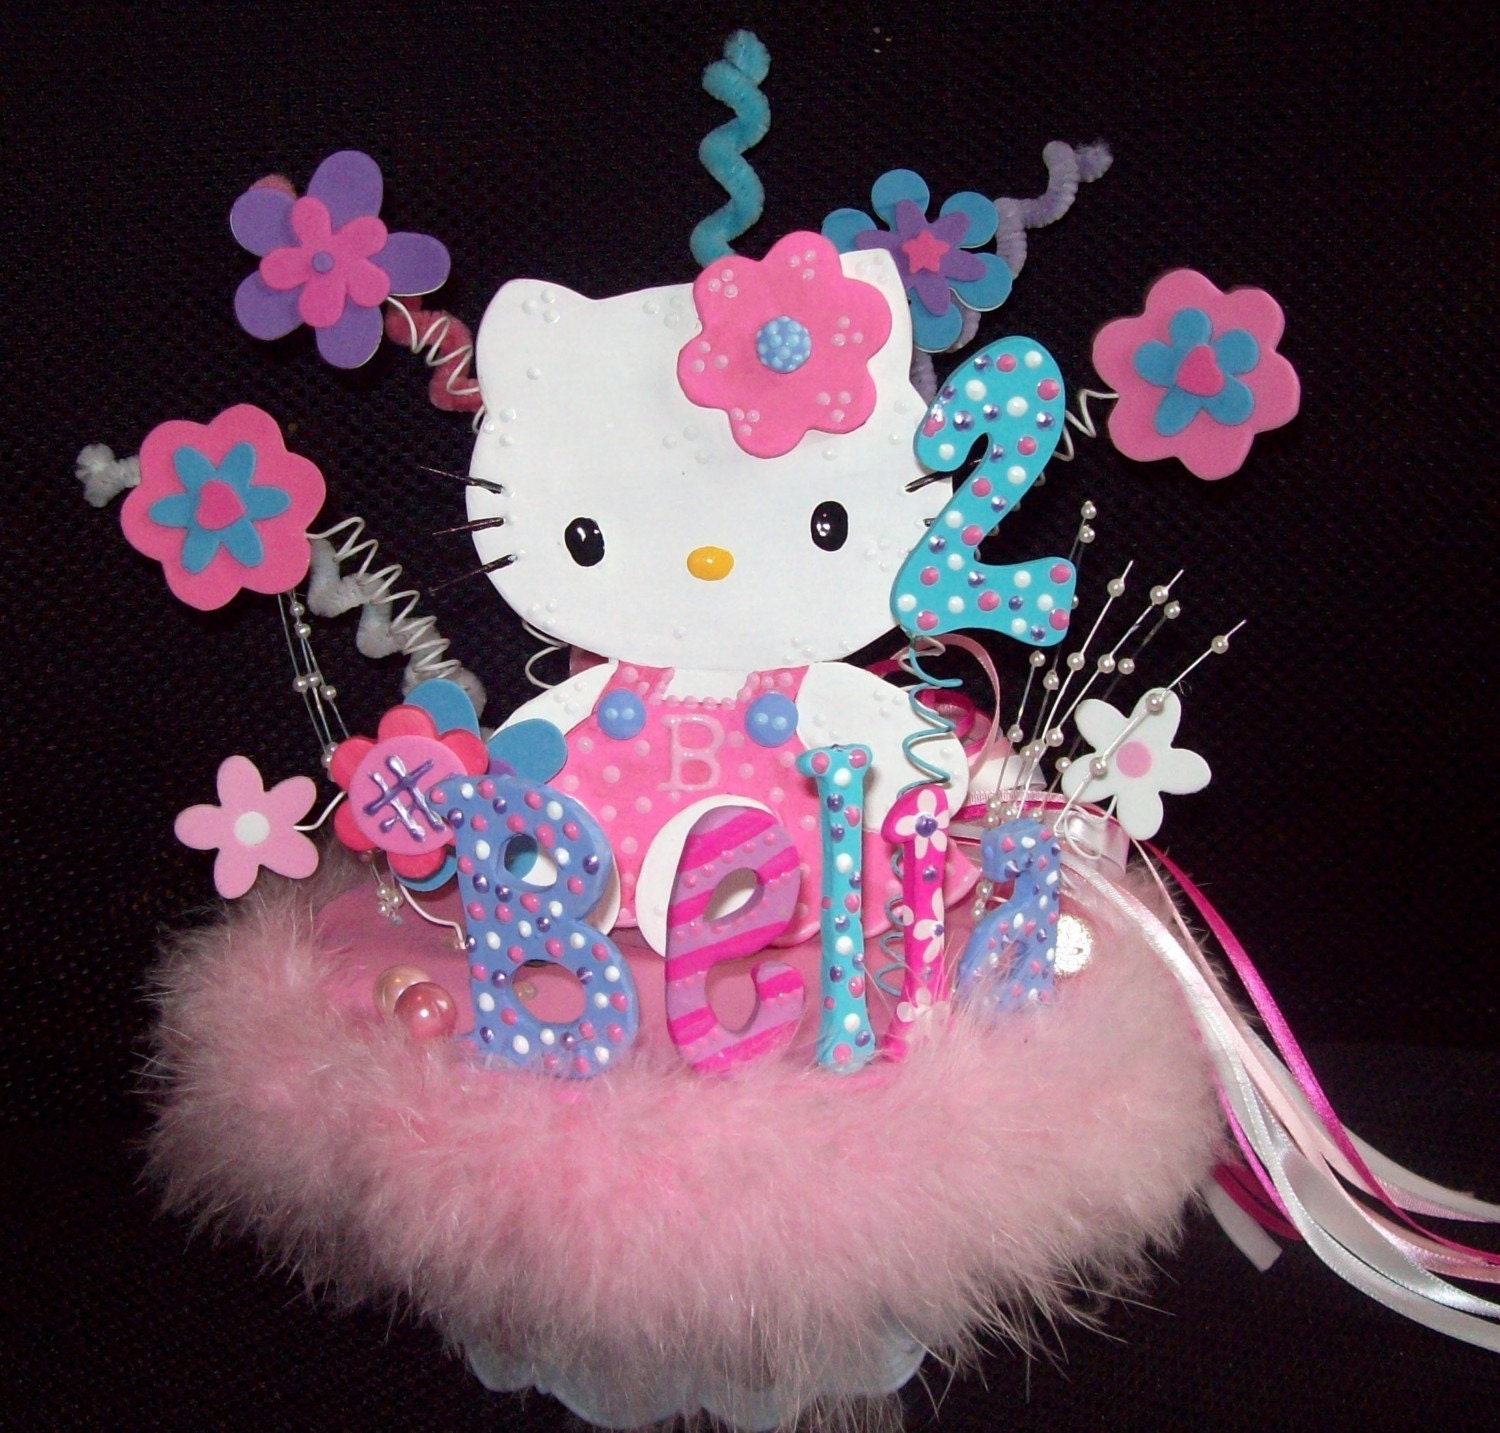 Birthday Party Ideas On Pinterest Hello Kitty Cake And